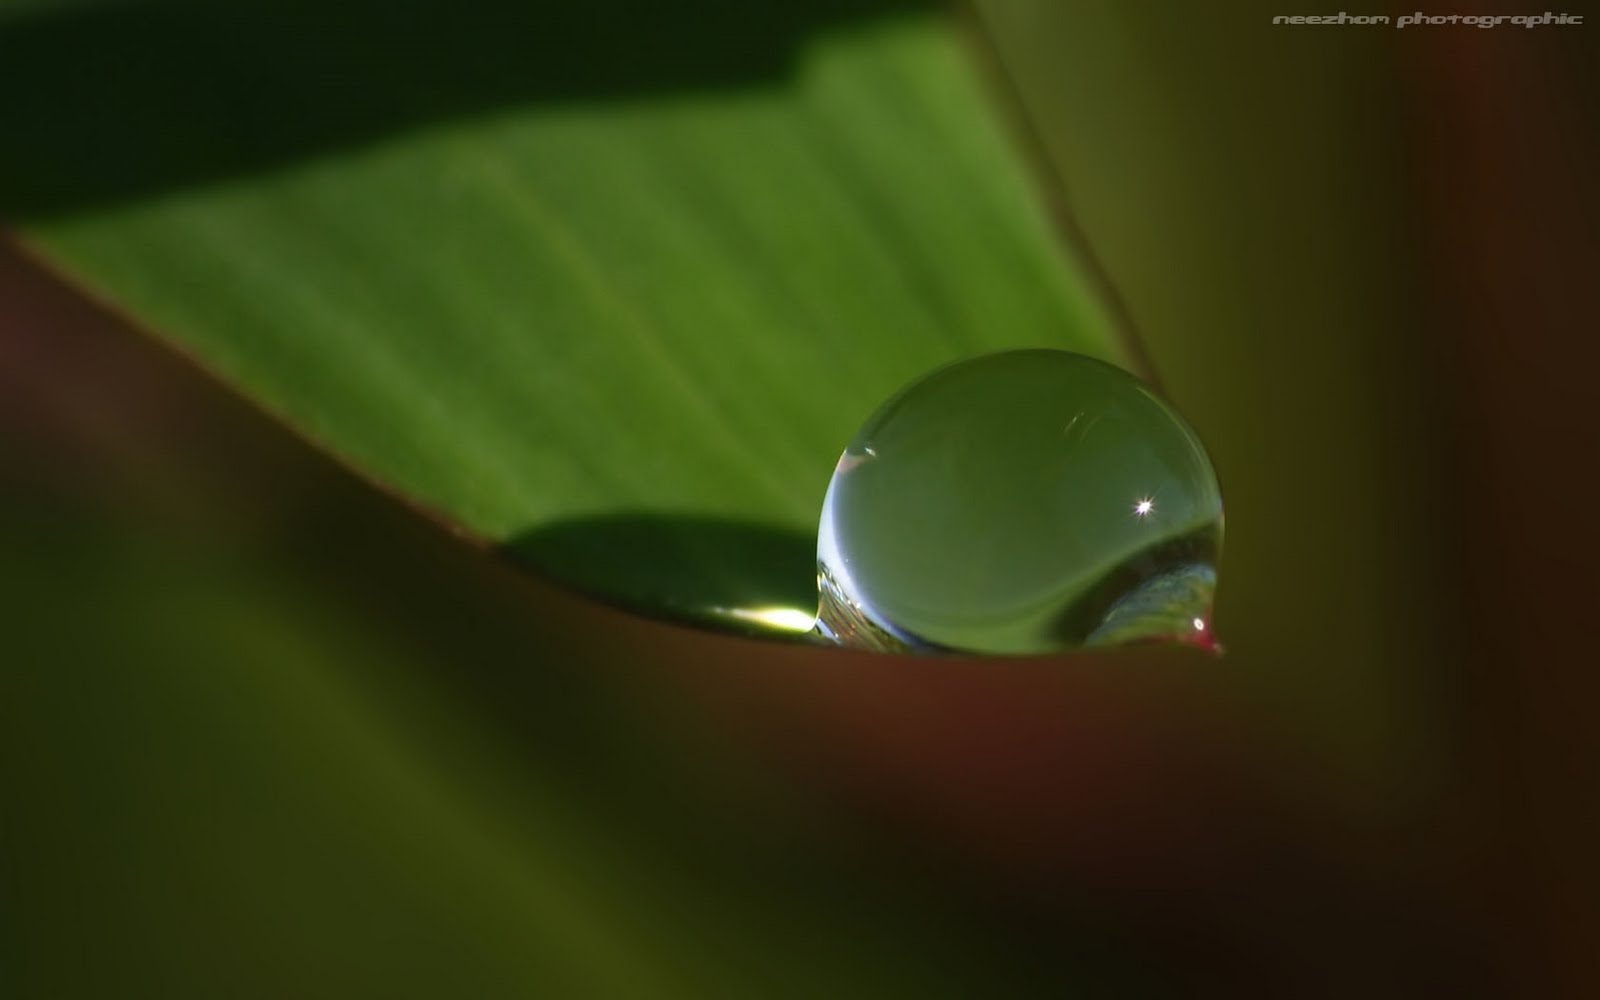 A leaf hold a dew drop, with caustic and sun sparkle